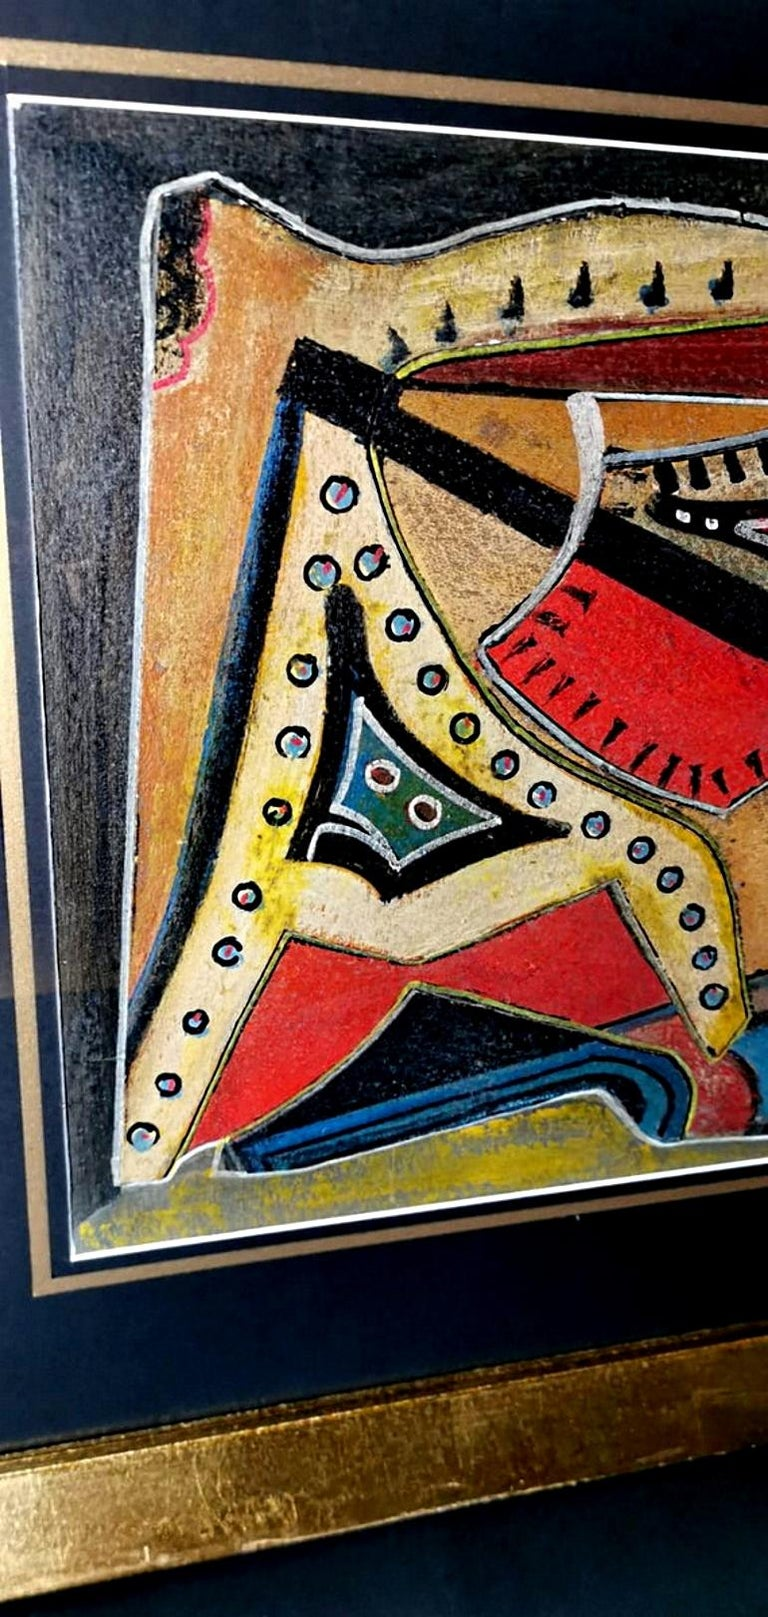 Mixed Technique Russian Constructivism Picture on Cardboard, 20th Century For Sale 4